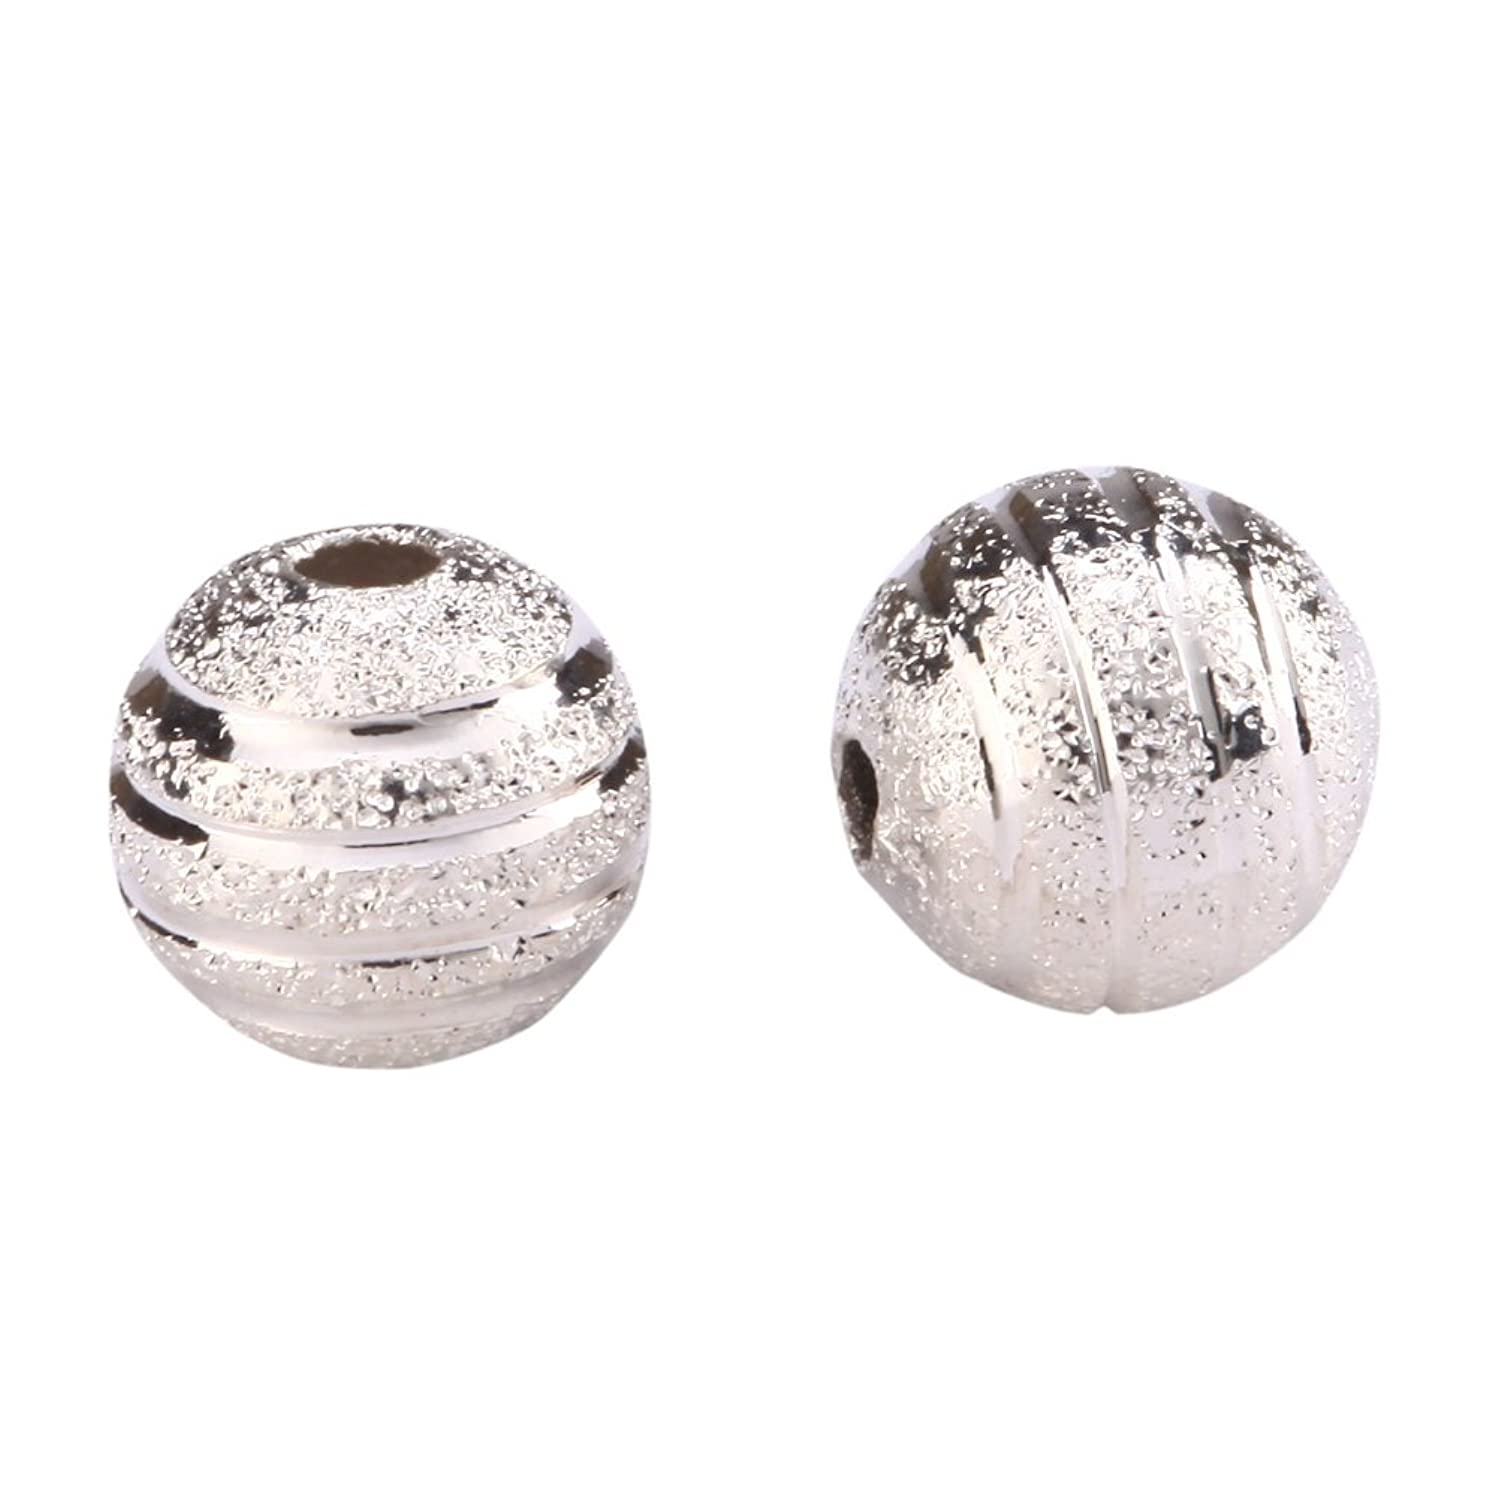 100pcs Top Quality 10mm Ribbon Pattern Spacer Beads Beautiful Round Metal Beads Sterling Silver Plated Brass CF10-10